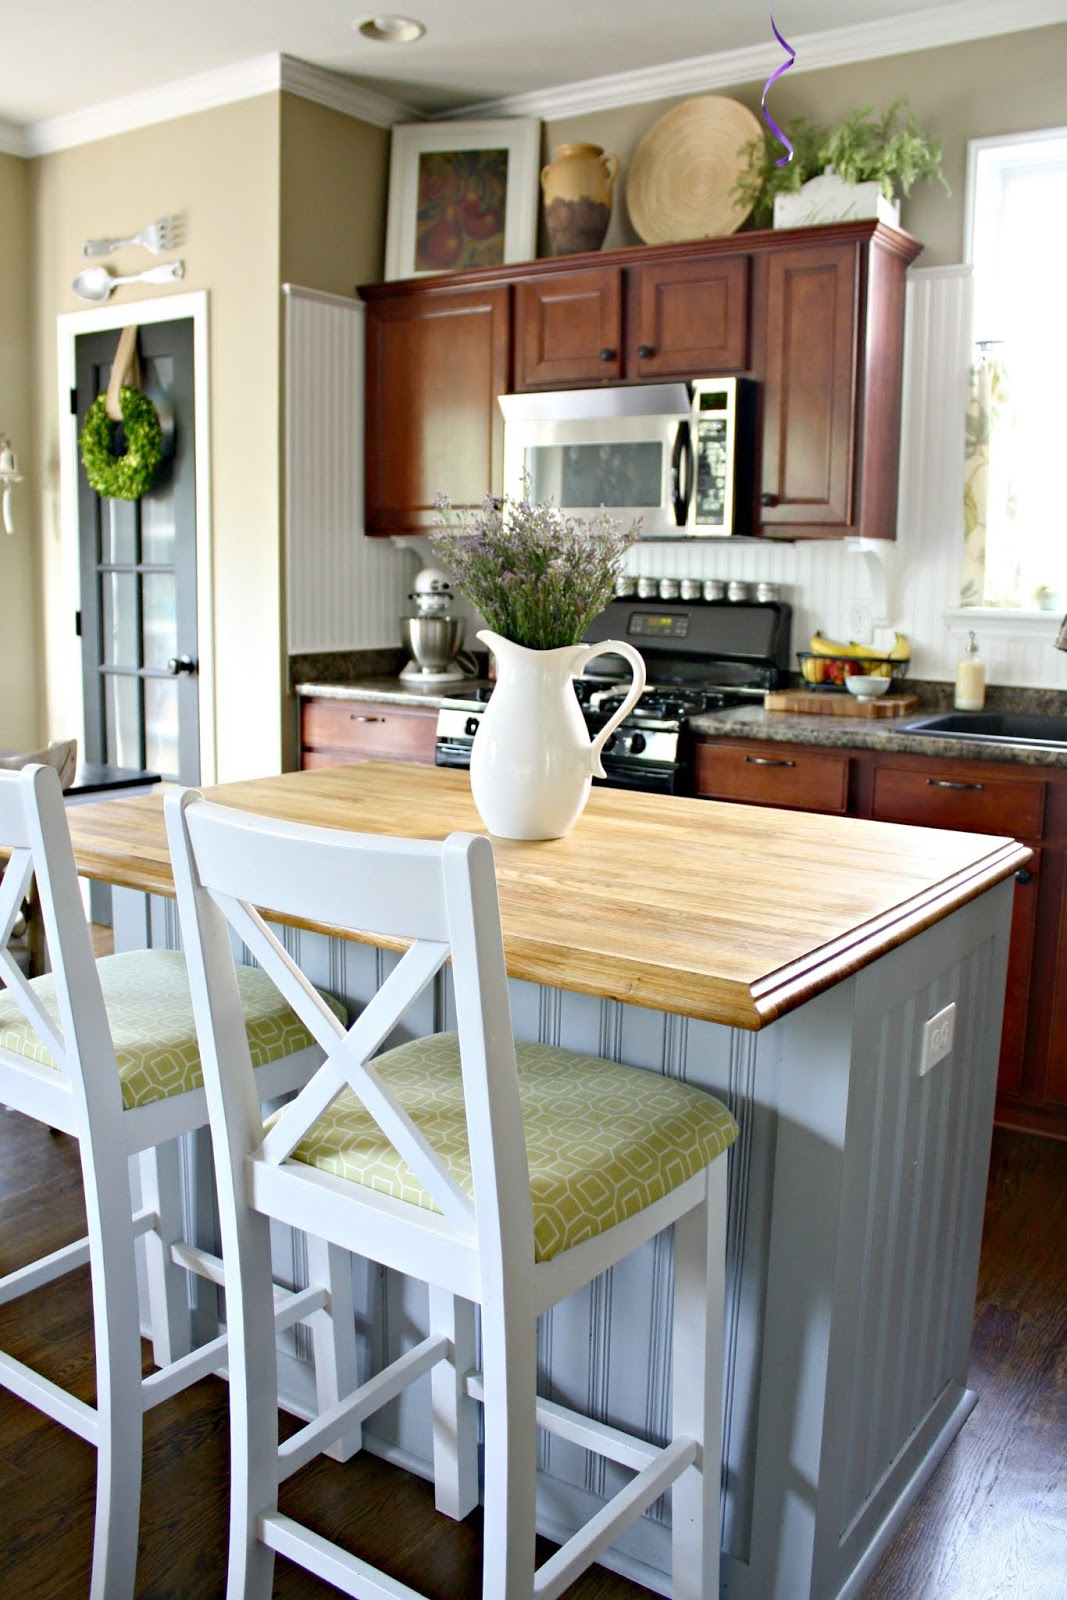 Covering kitchen island with beadboard for farmhouse look